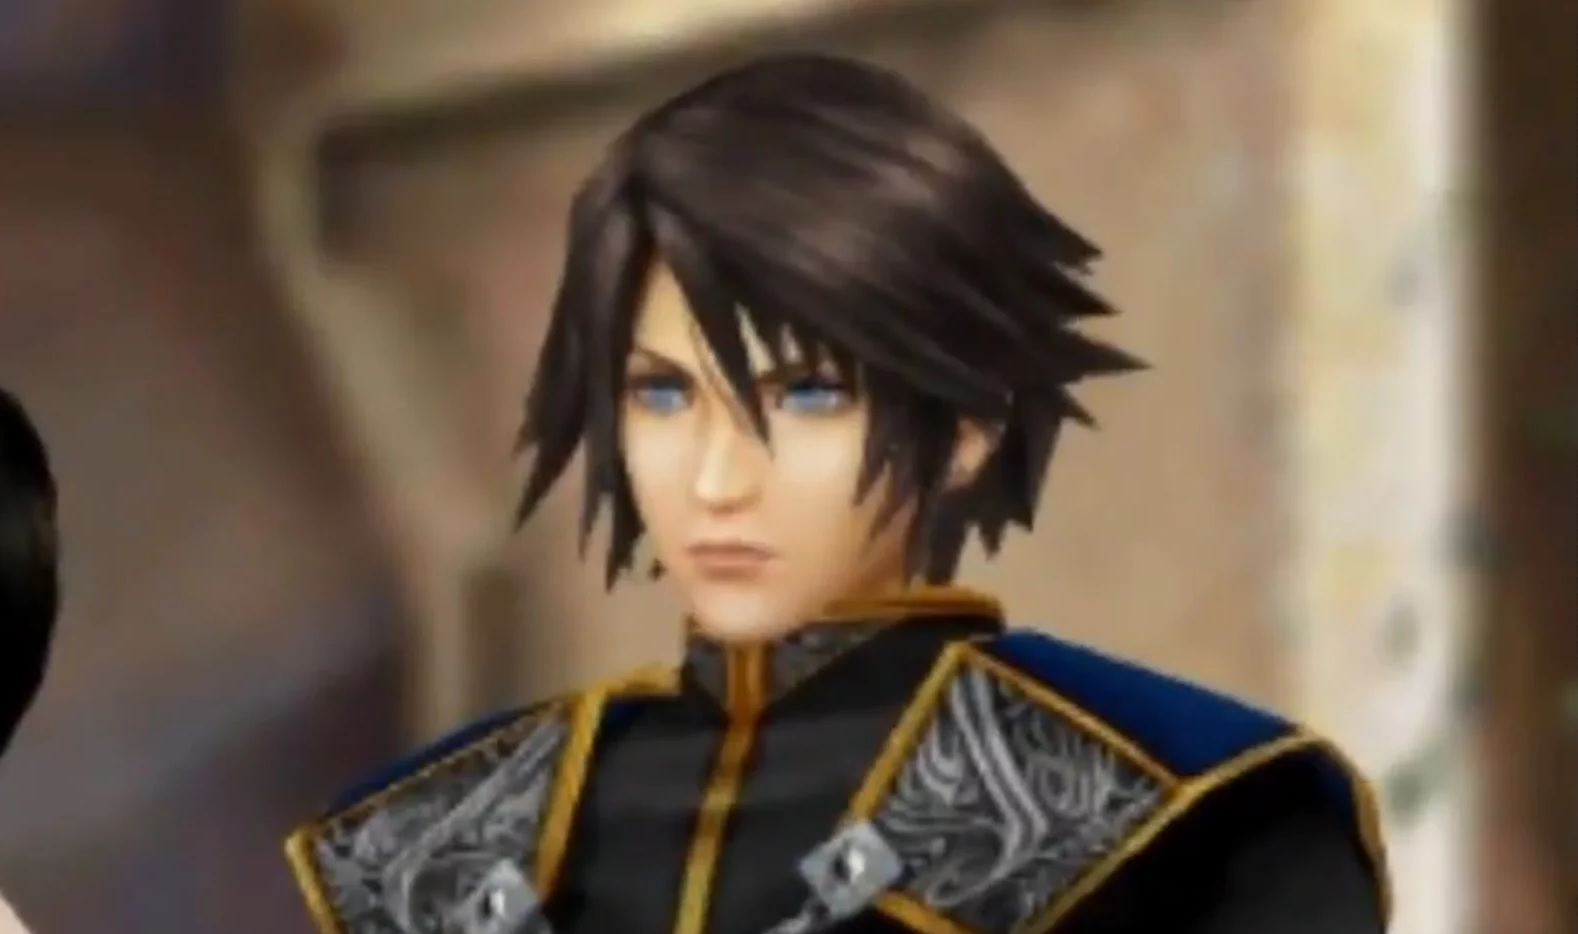 Squall may finally be the best looking guy in the room screenshot